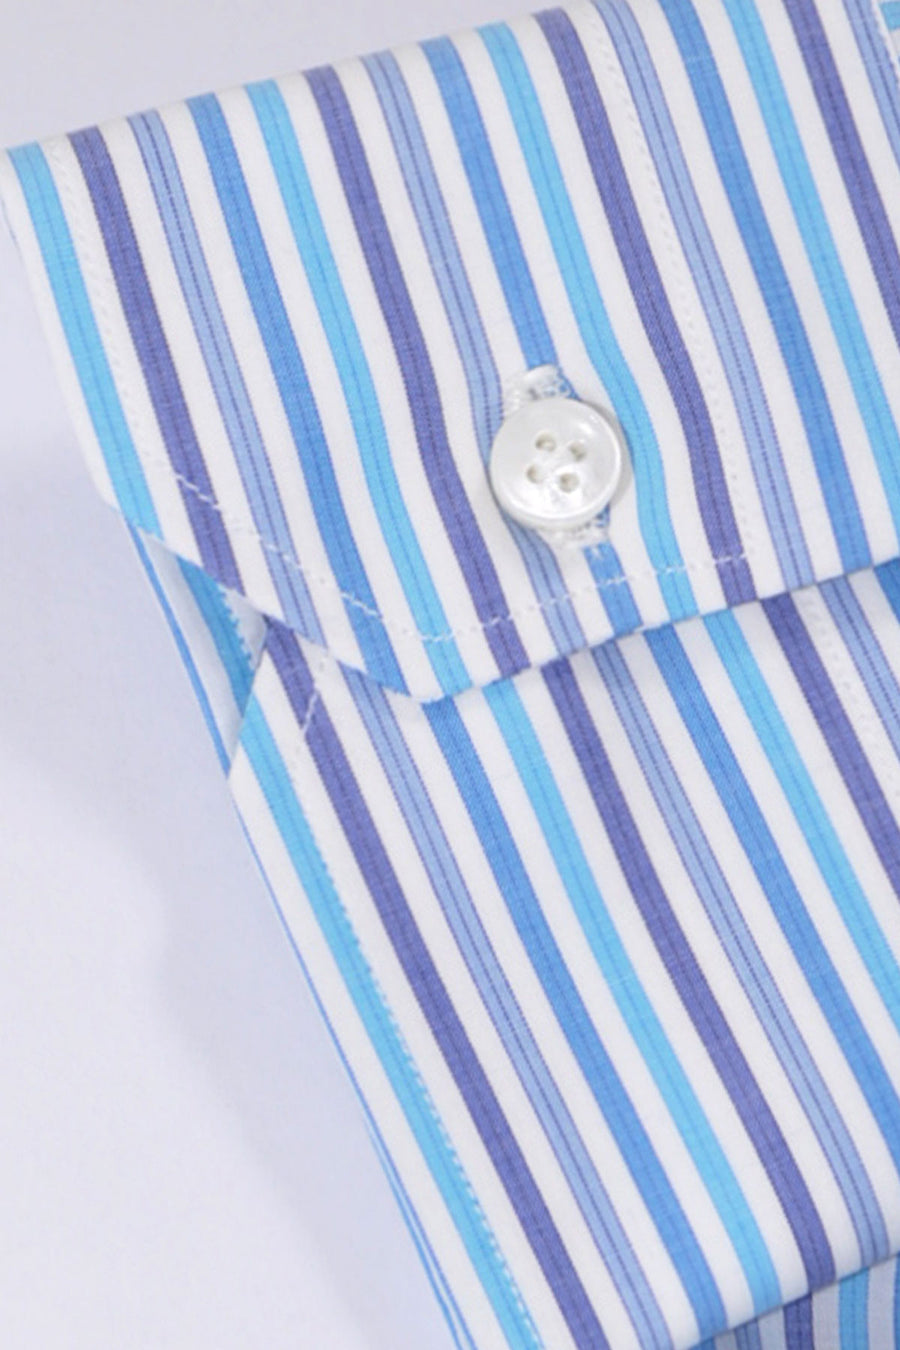 Mattabisch Dress Shirt White Aqua Blue Stripes 39 - 15 1/2